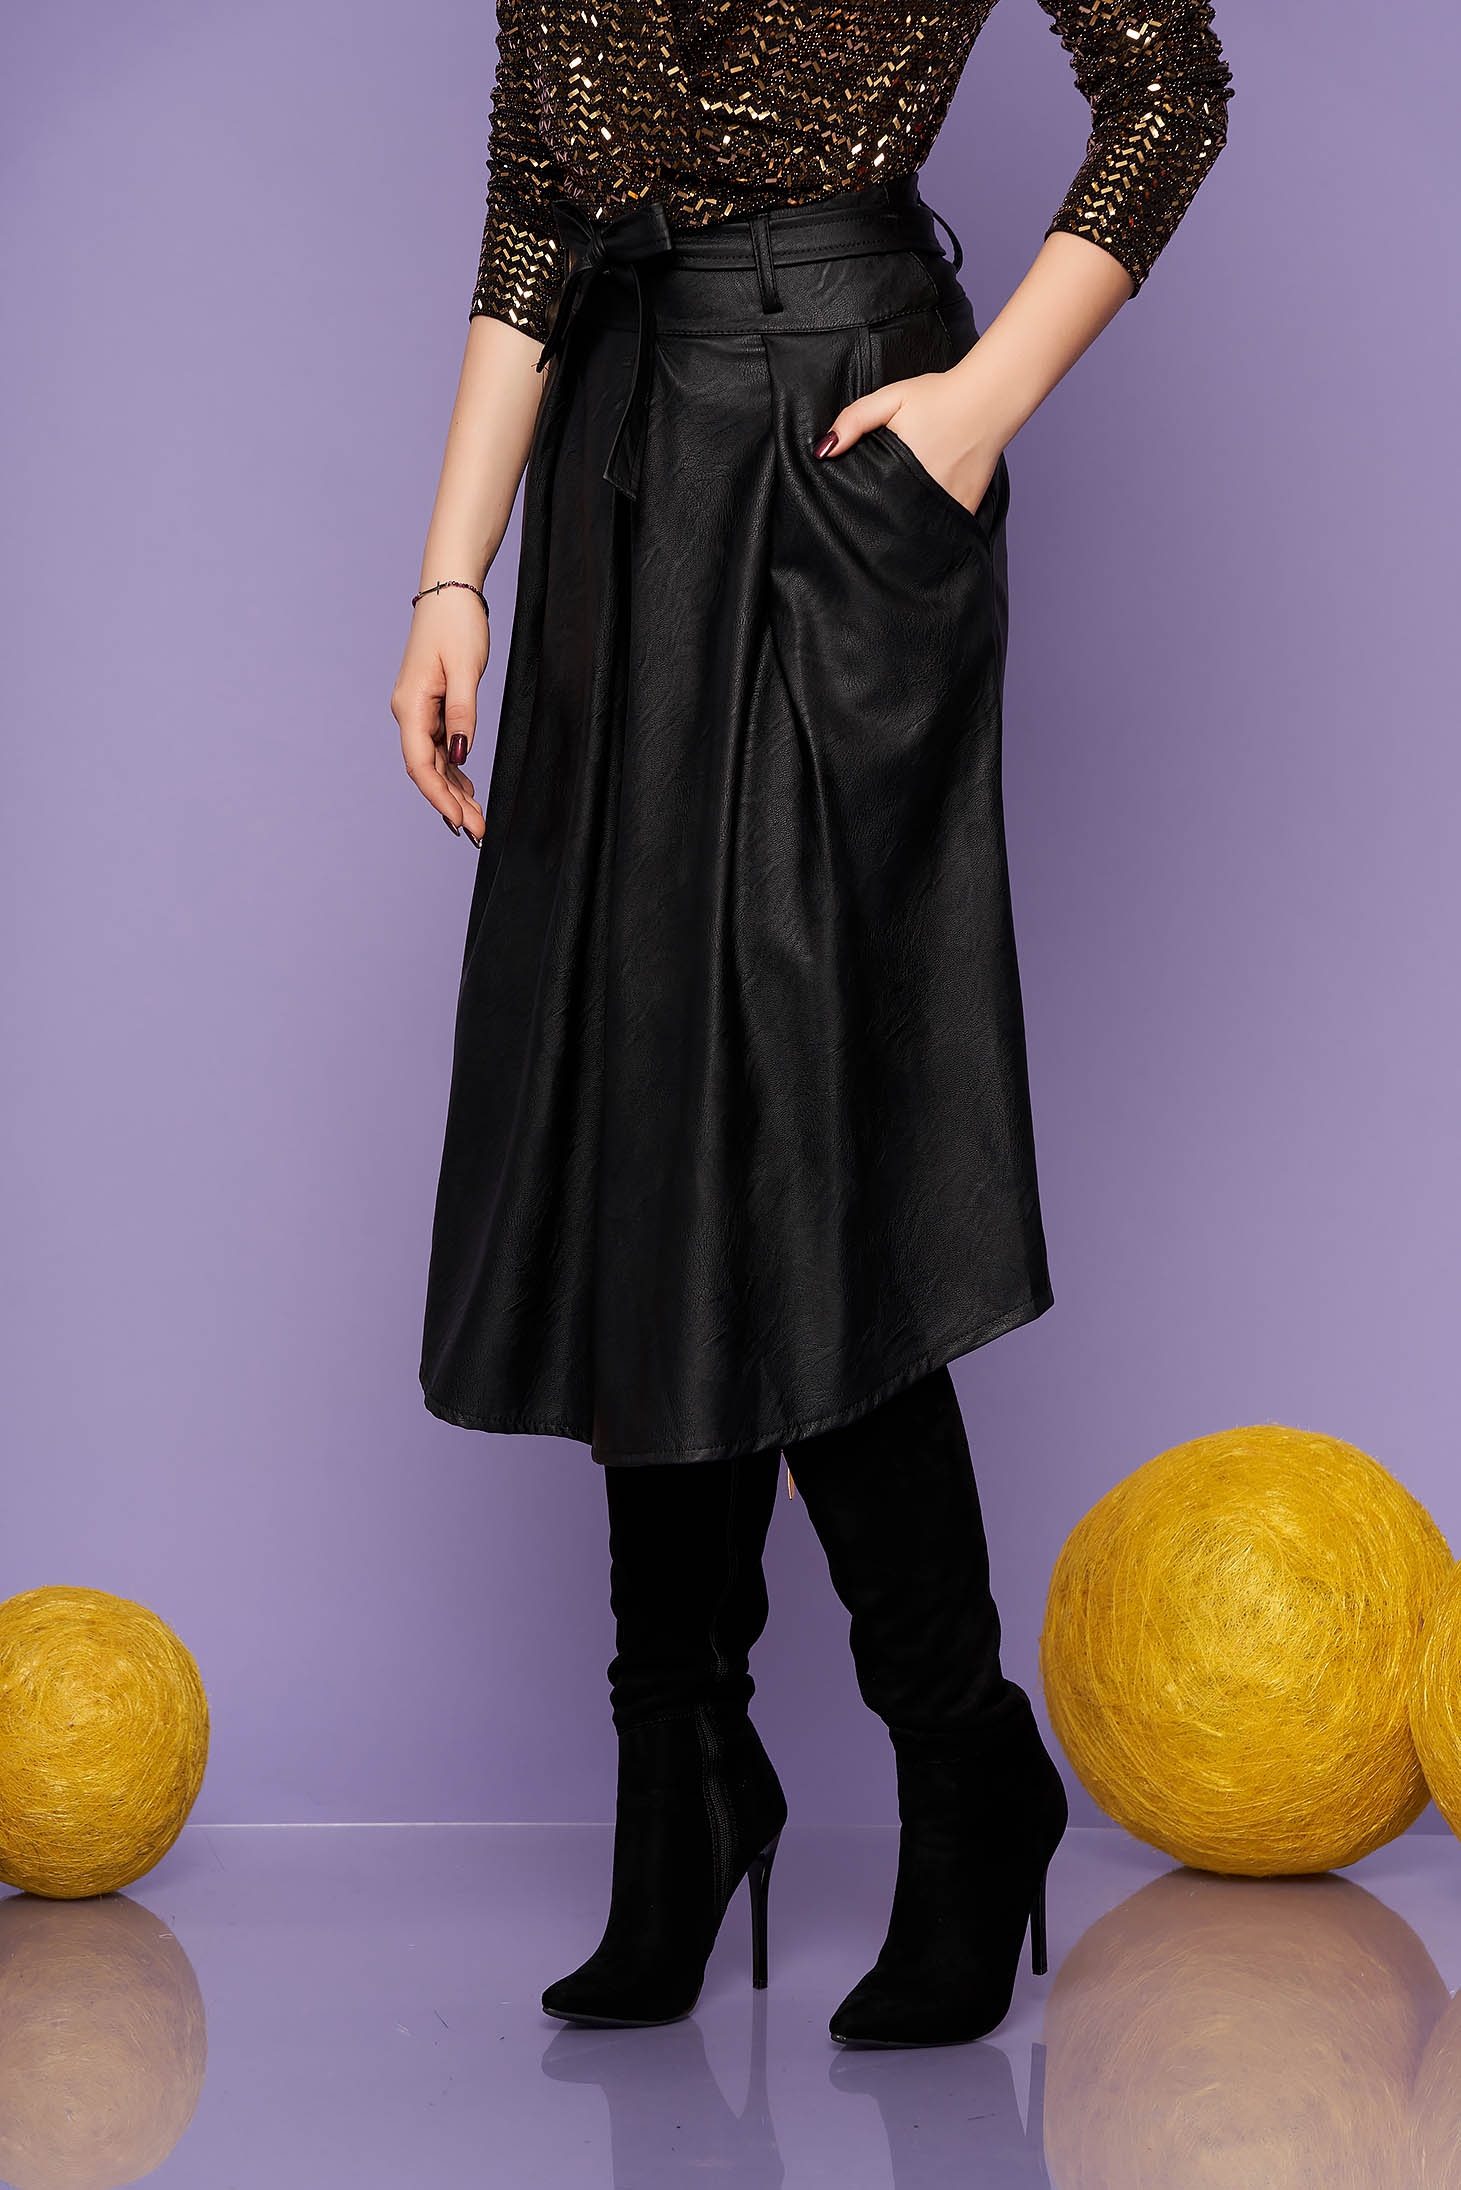 Black skirt casual midi cloche with pockets from ecological leather detachable cord back zipper fastening